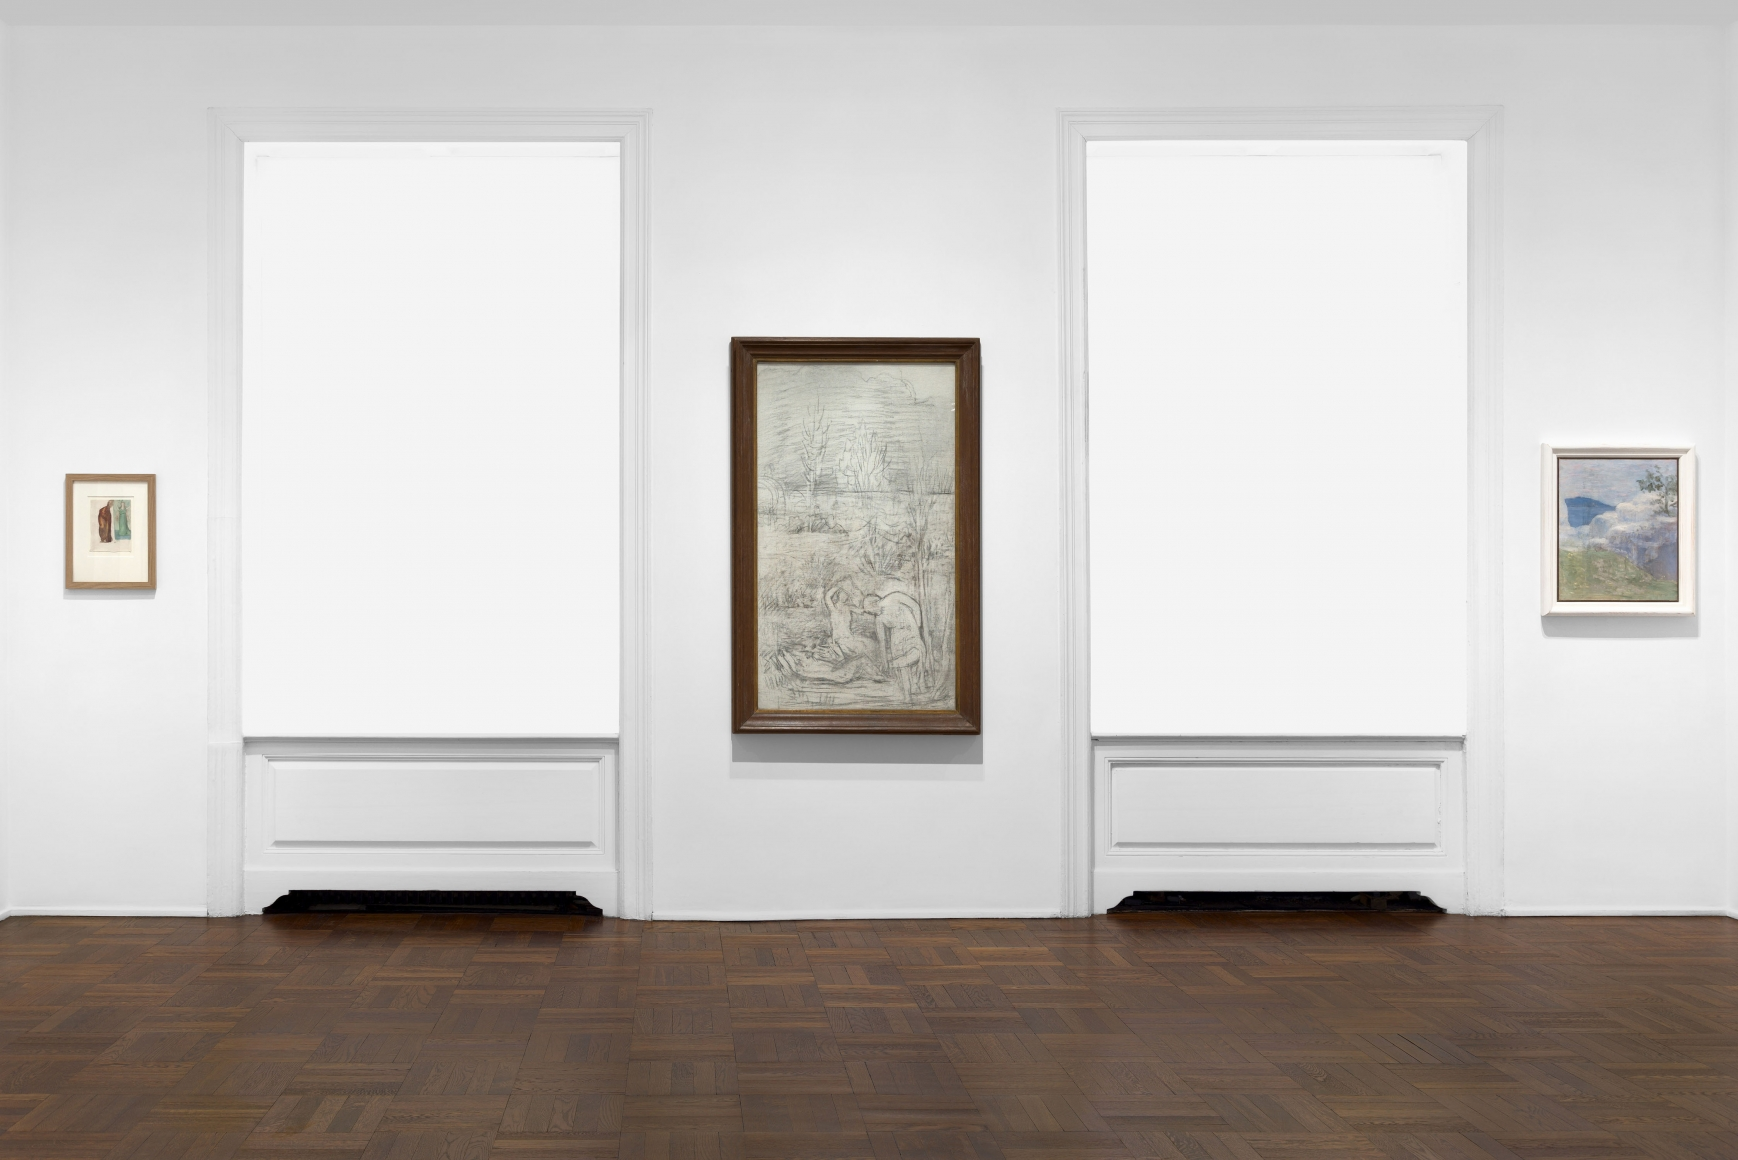 PIERRE PUVIS DE CHAVANNES, Works on Paper and Paintings, New York, 2018, Installation Image 4